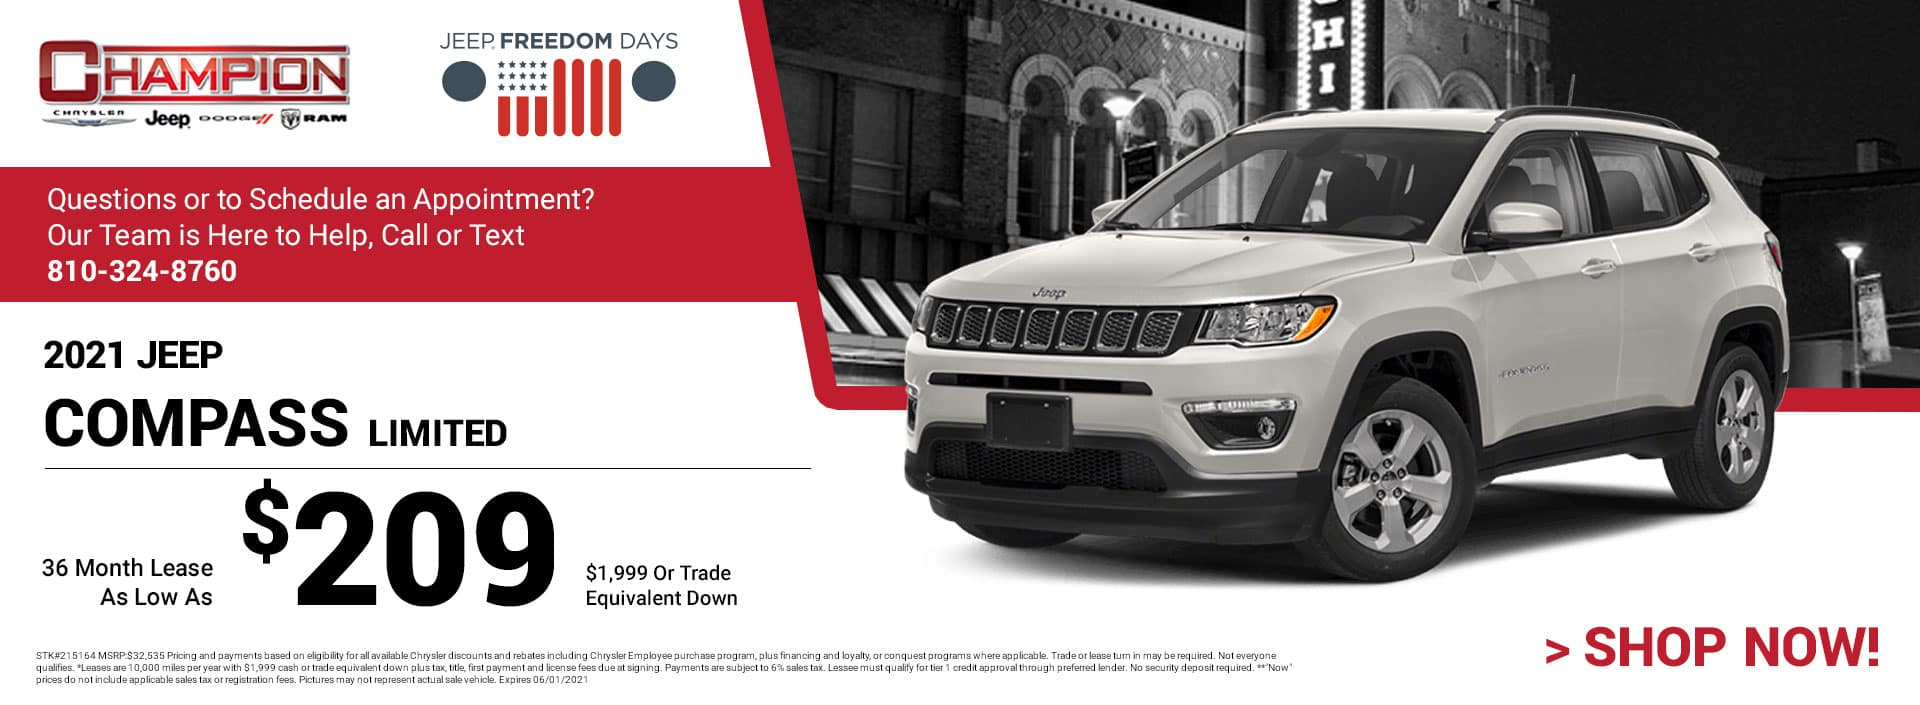 2021 Jeep Compass Limited 215164 $32,535 $1,999 or Trade Equivalent Down 36 $209